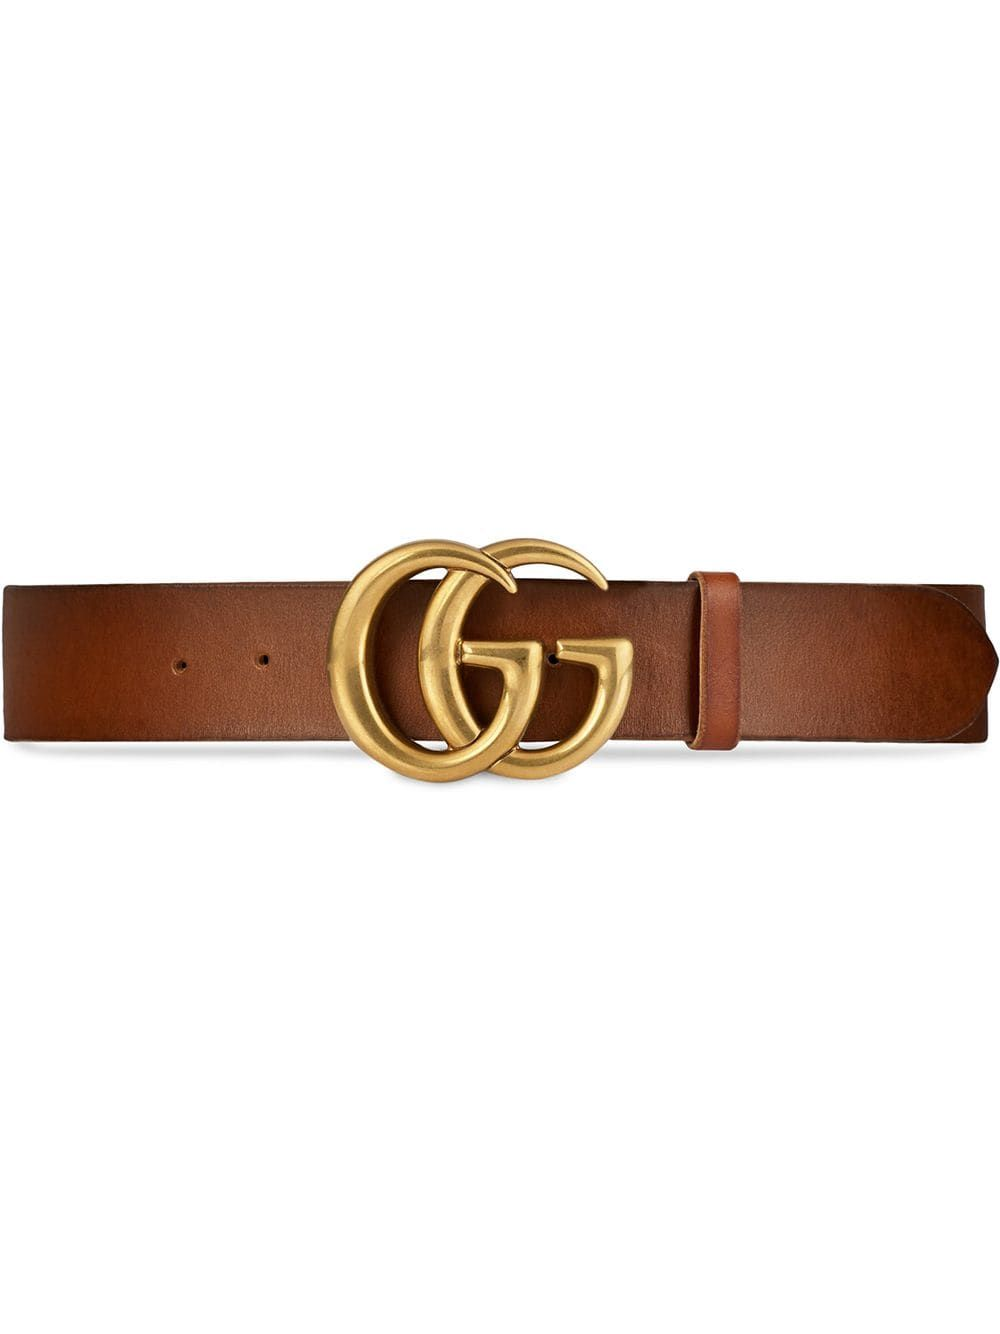 b03af71fc GUCCI GUCCI LEATHER BELT WITH DOUBLE G BUCKLE - BROWN. #gucci ...